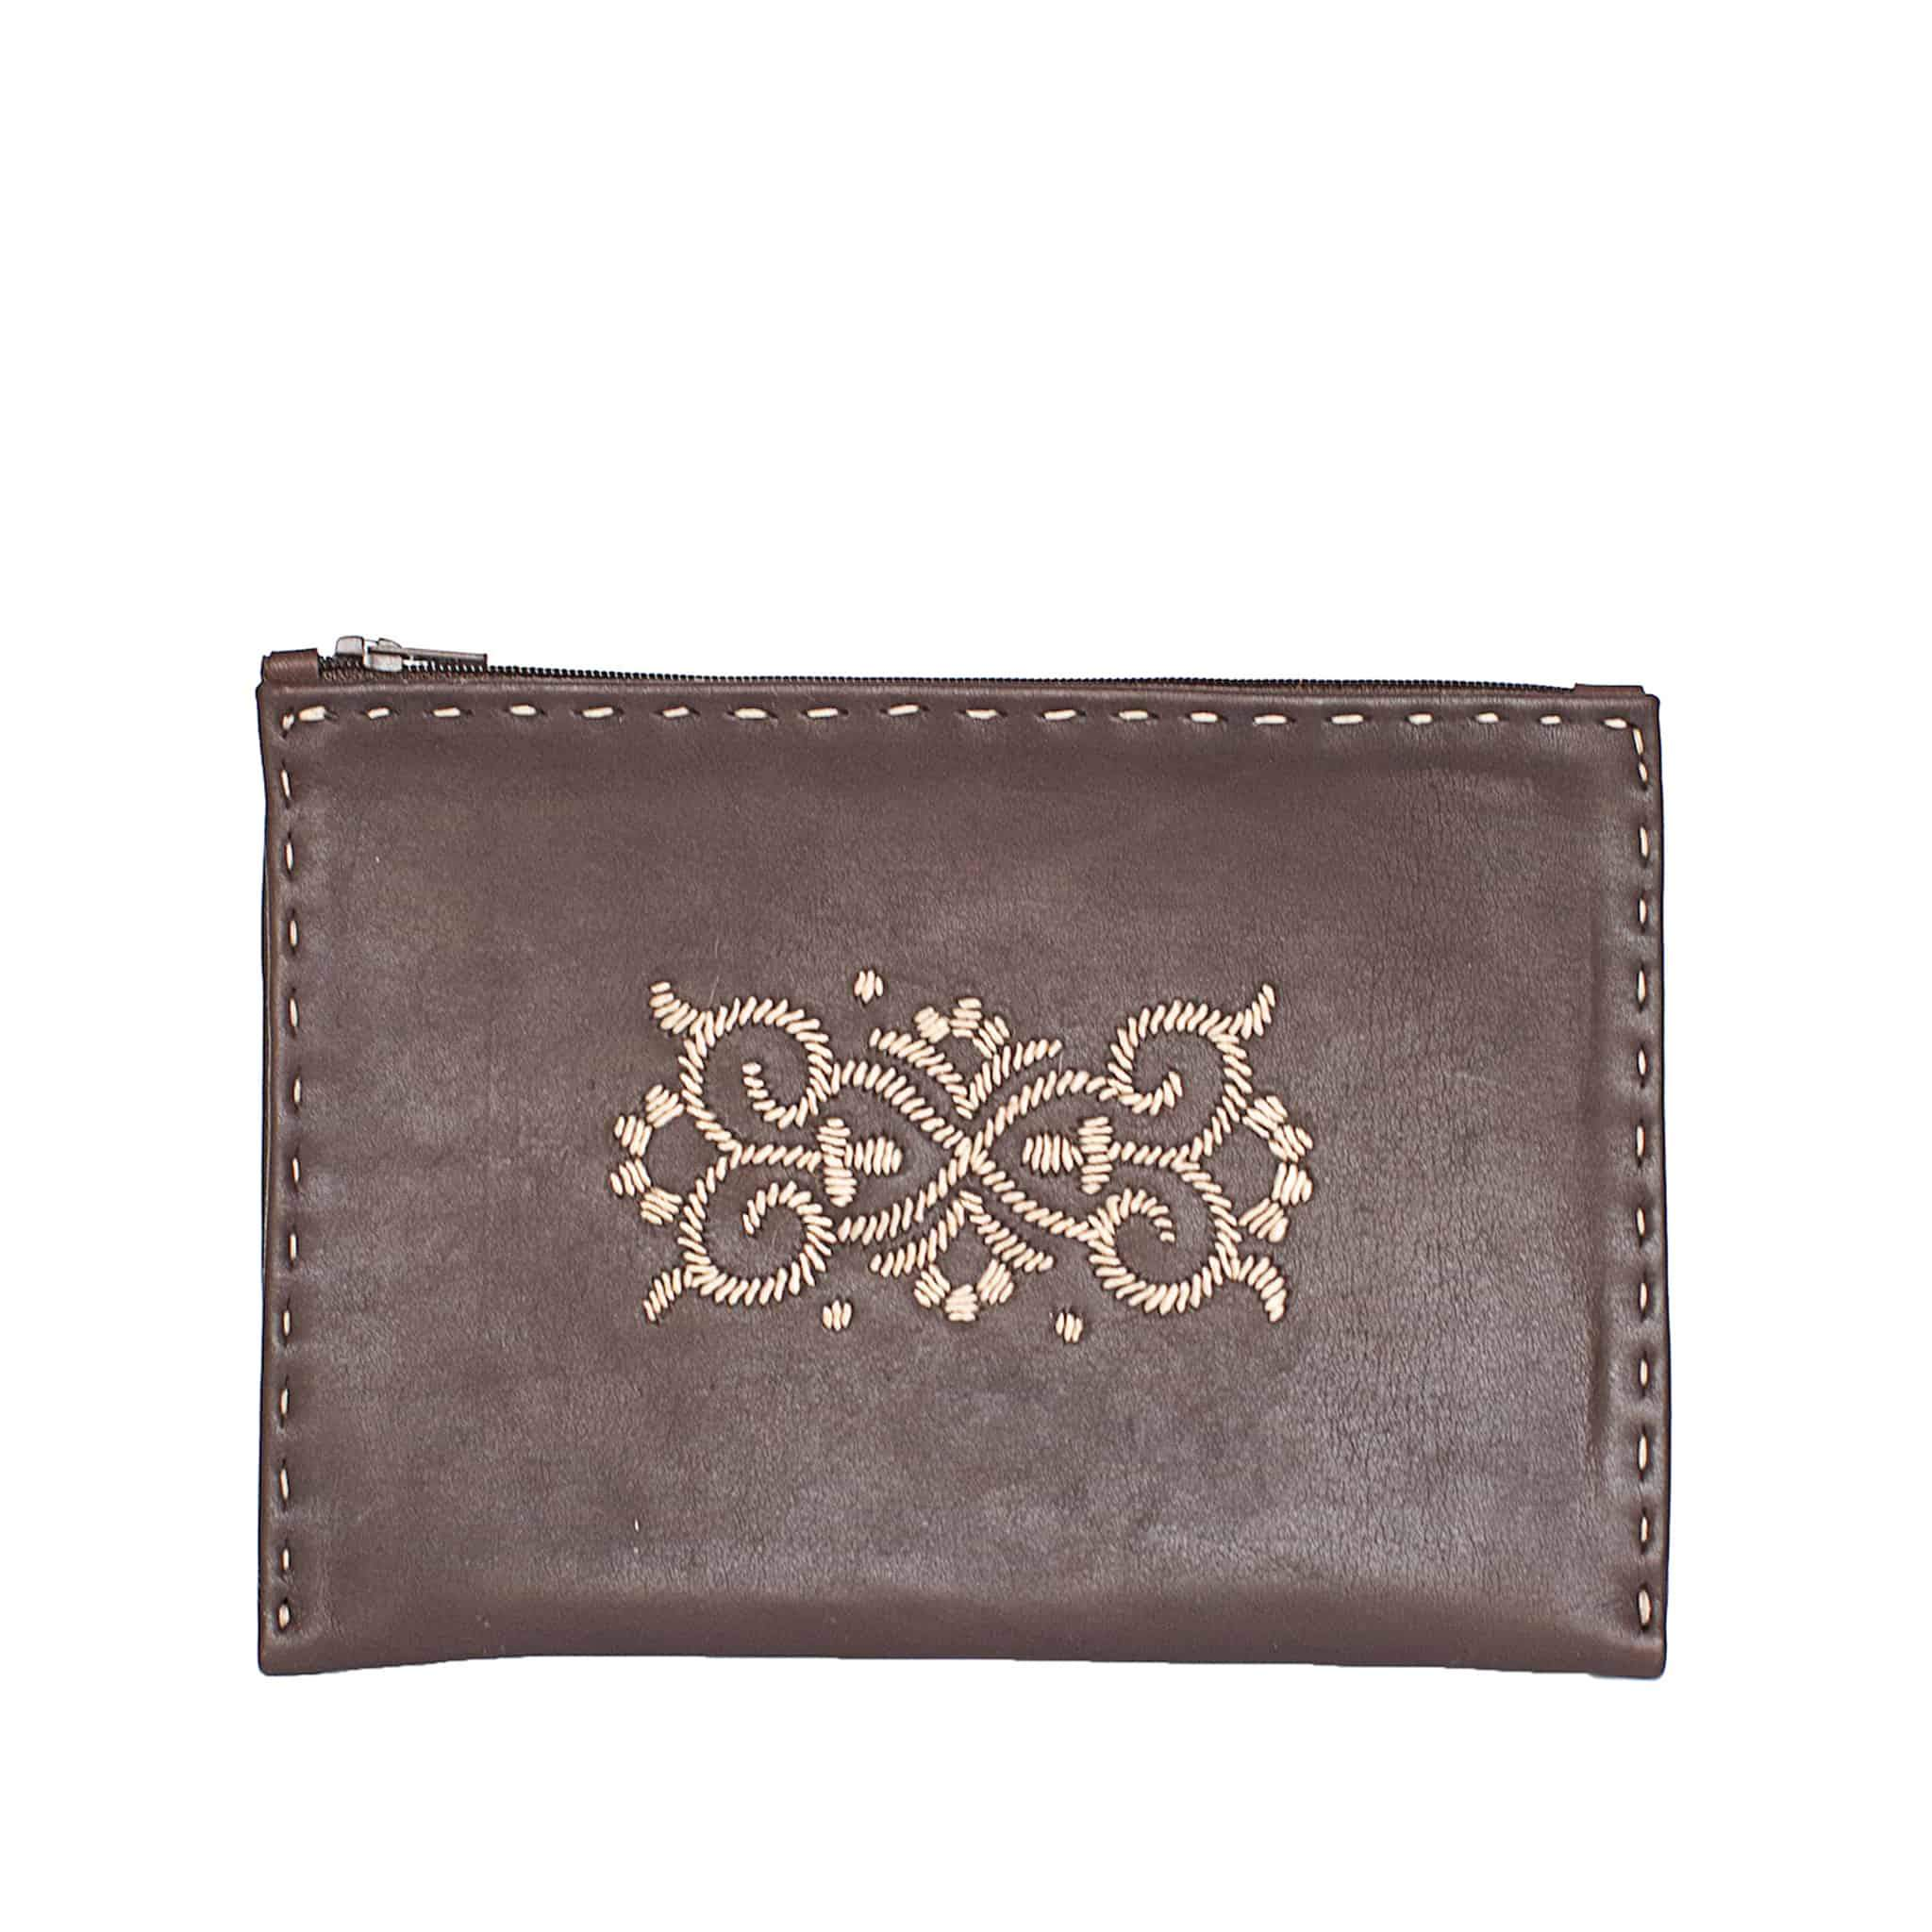 Embroidered Leather Pouch in Dark Brown, Beige from Abury